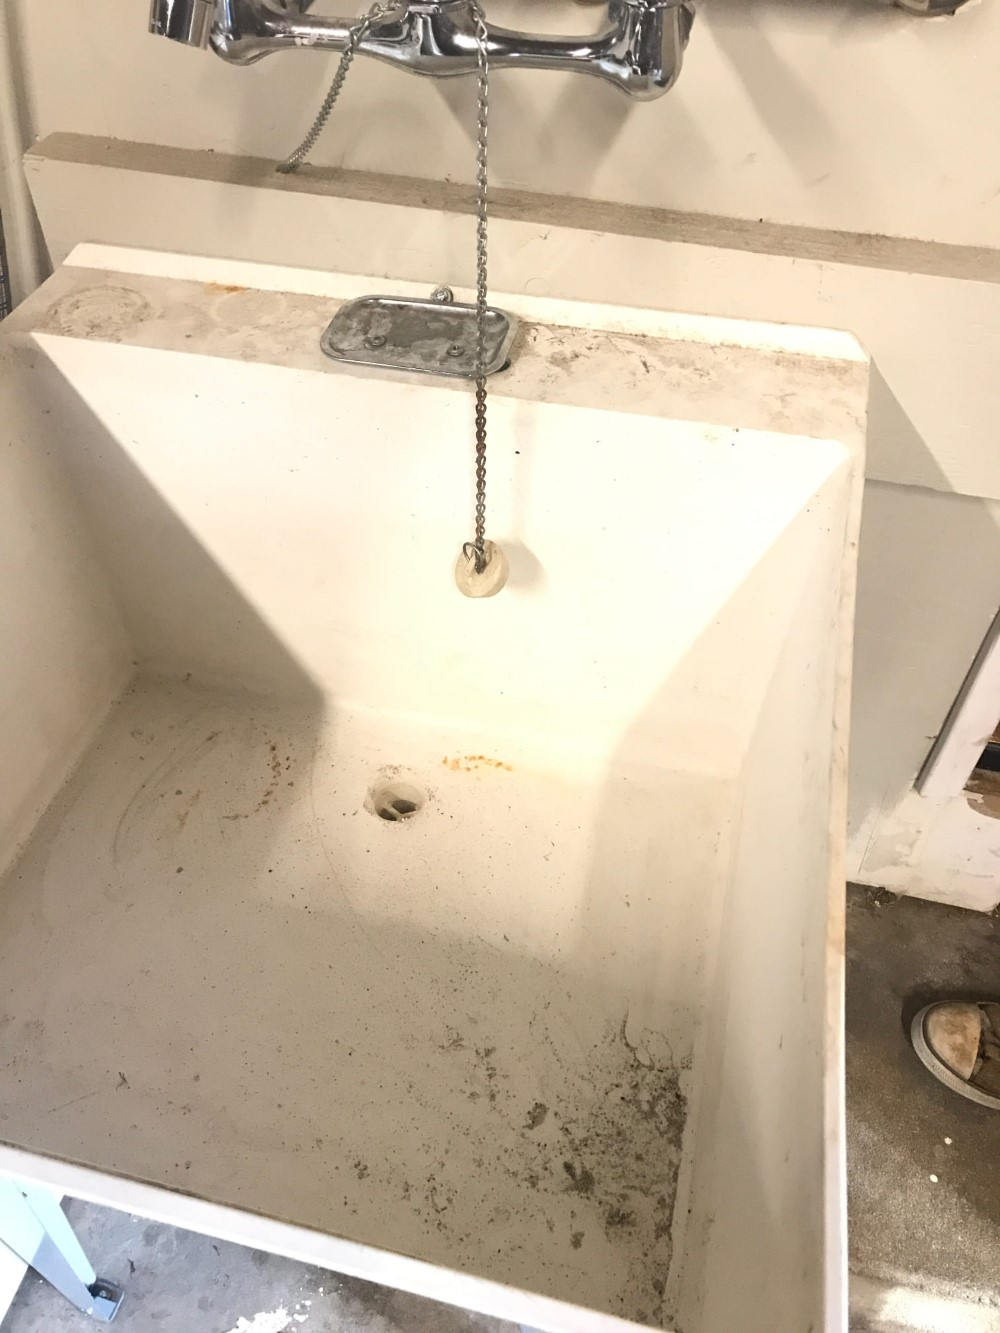 Laundry Drain Line Backing up in Modesto, CA